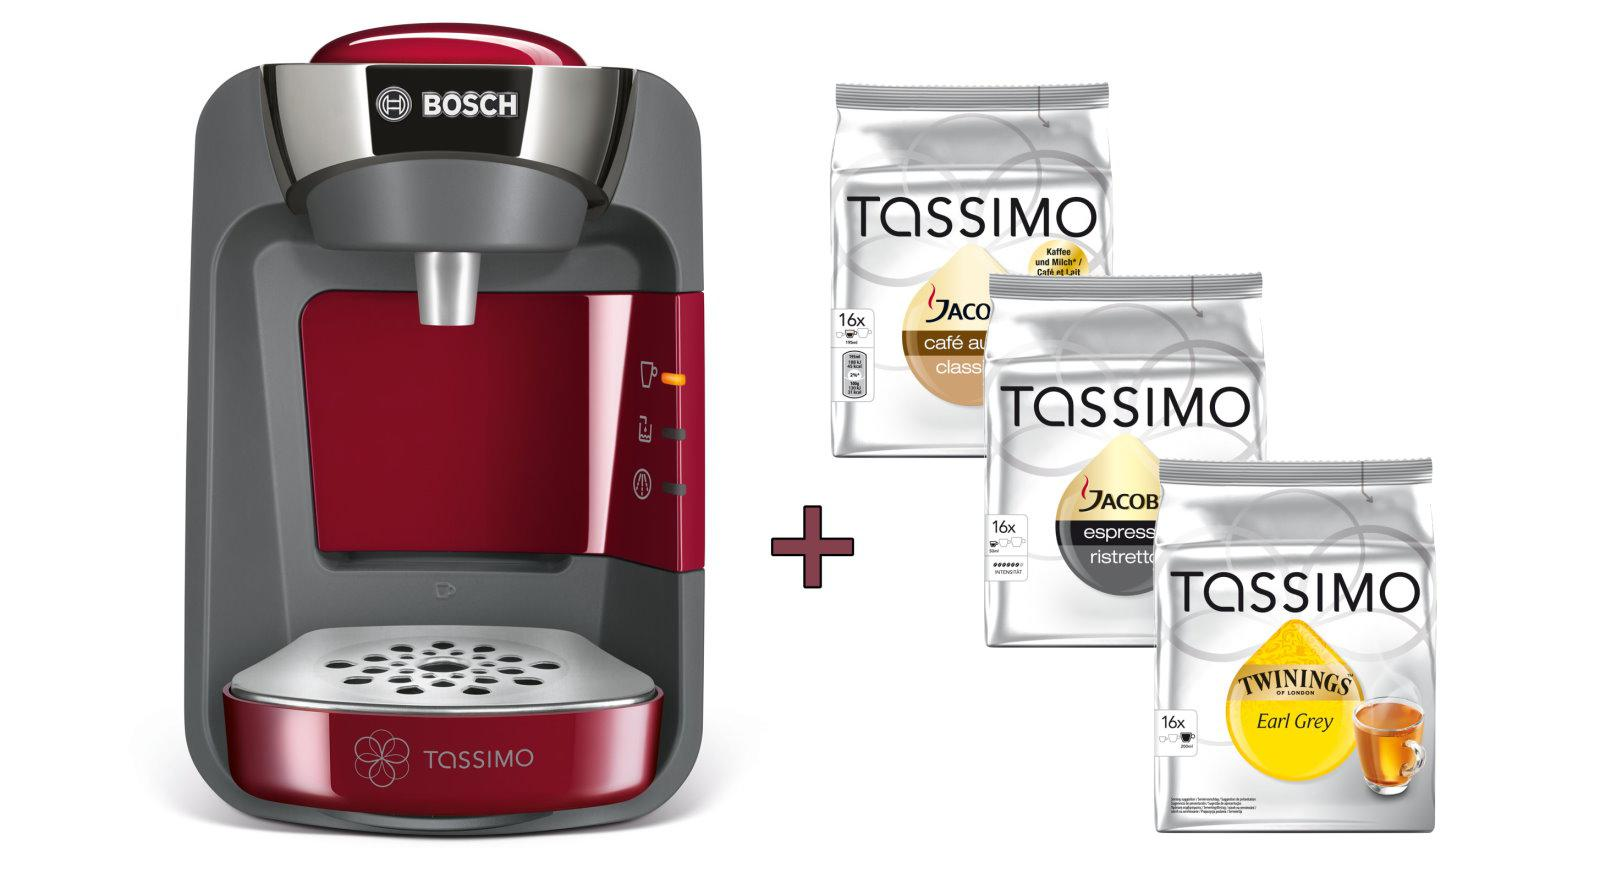 bosch tassimo suny 20 eur gutscheine 3x t disc tee hei getr nkemaschinen kaufen bei dtg. Black Bedroom Furniture Sets. Home Design Ideas